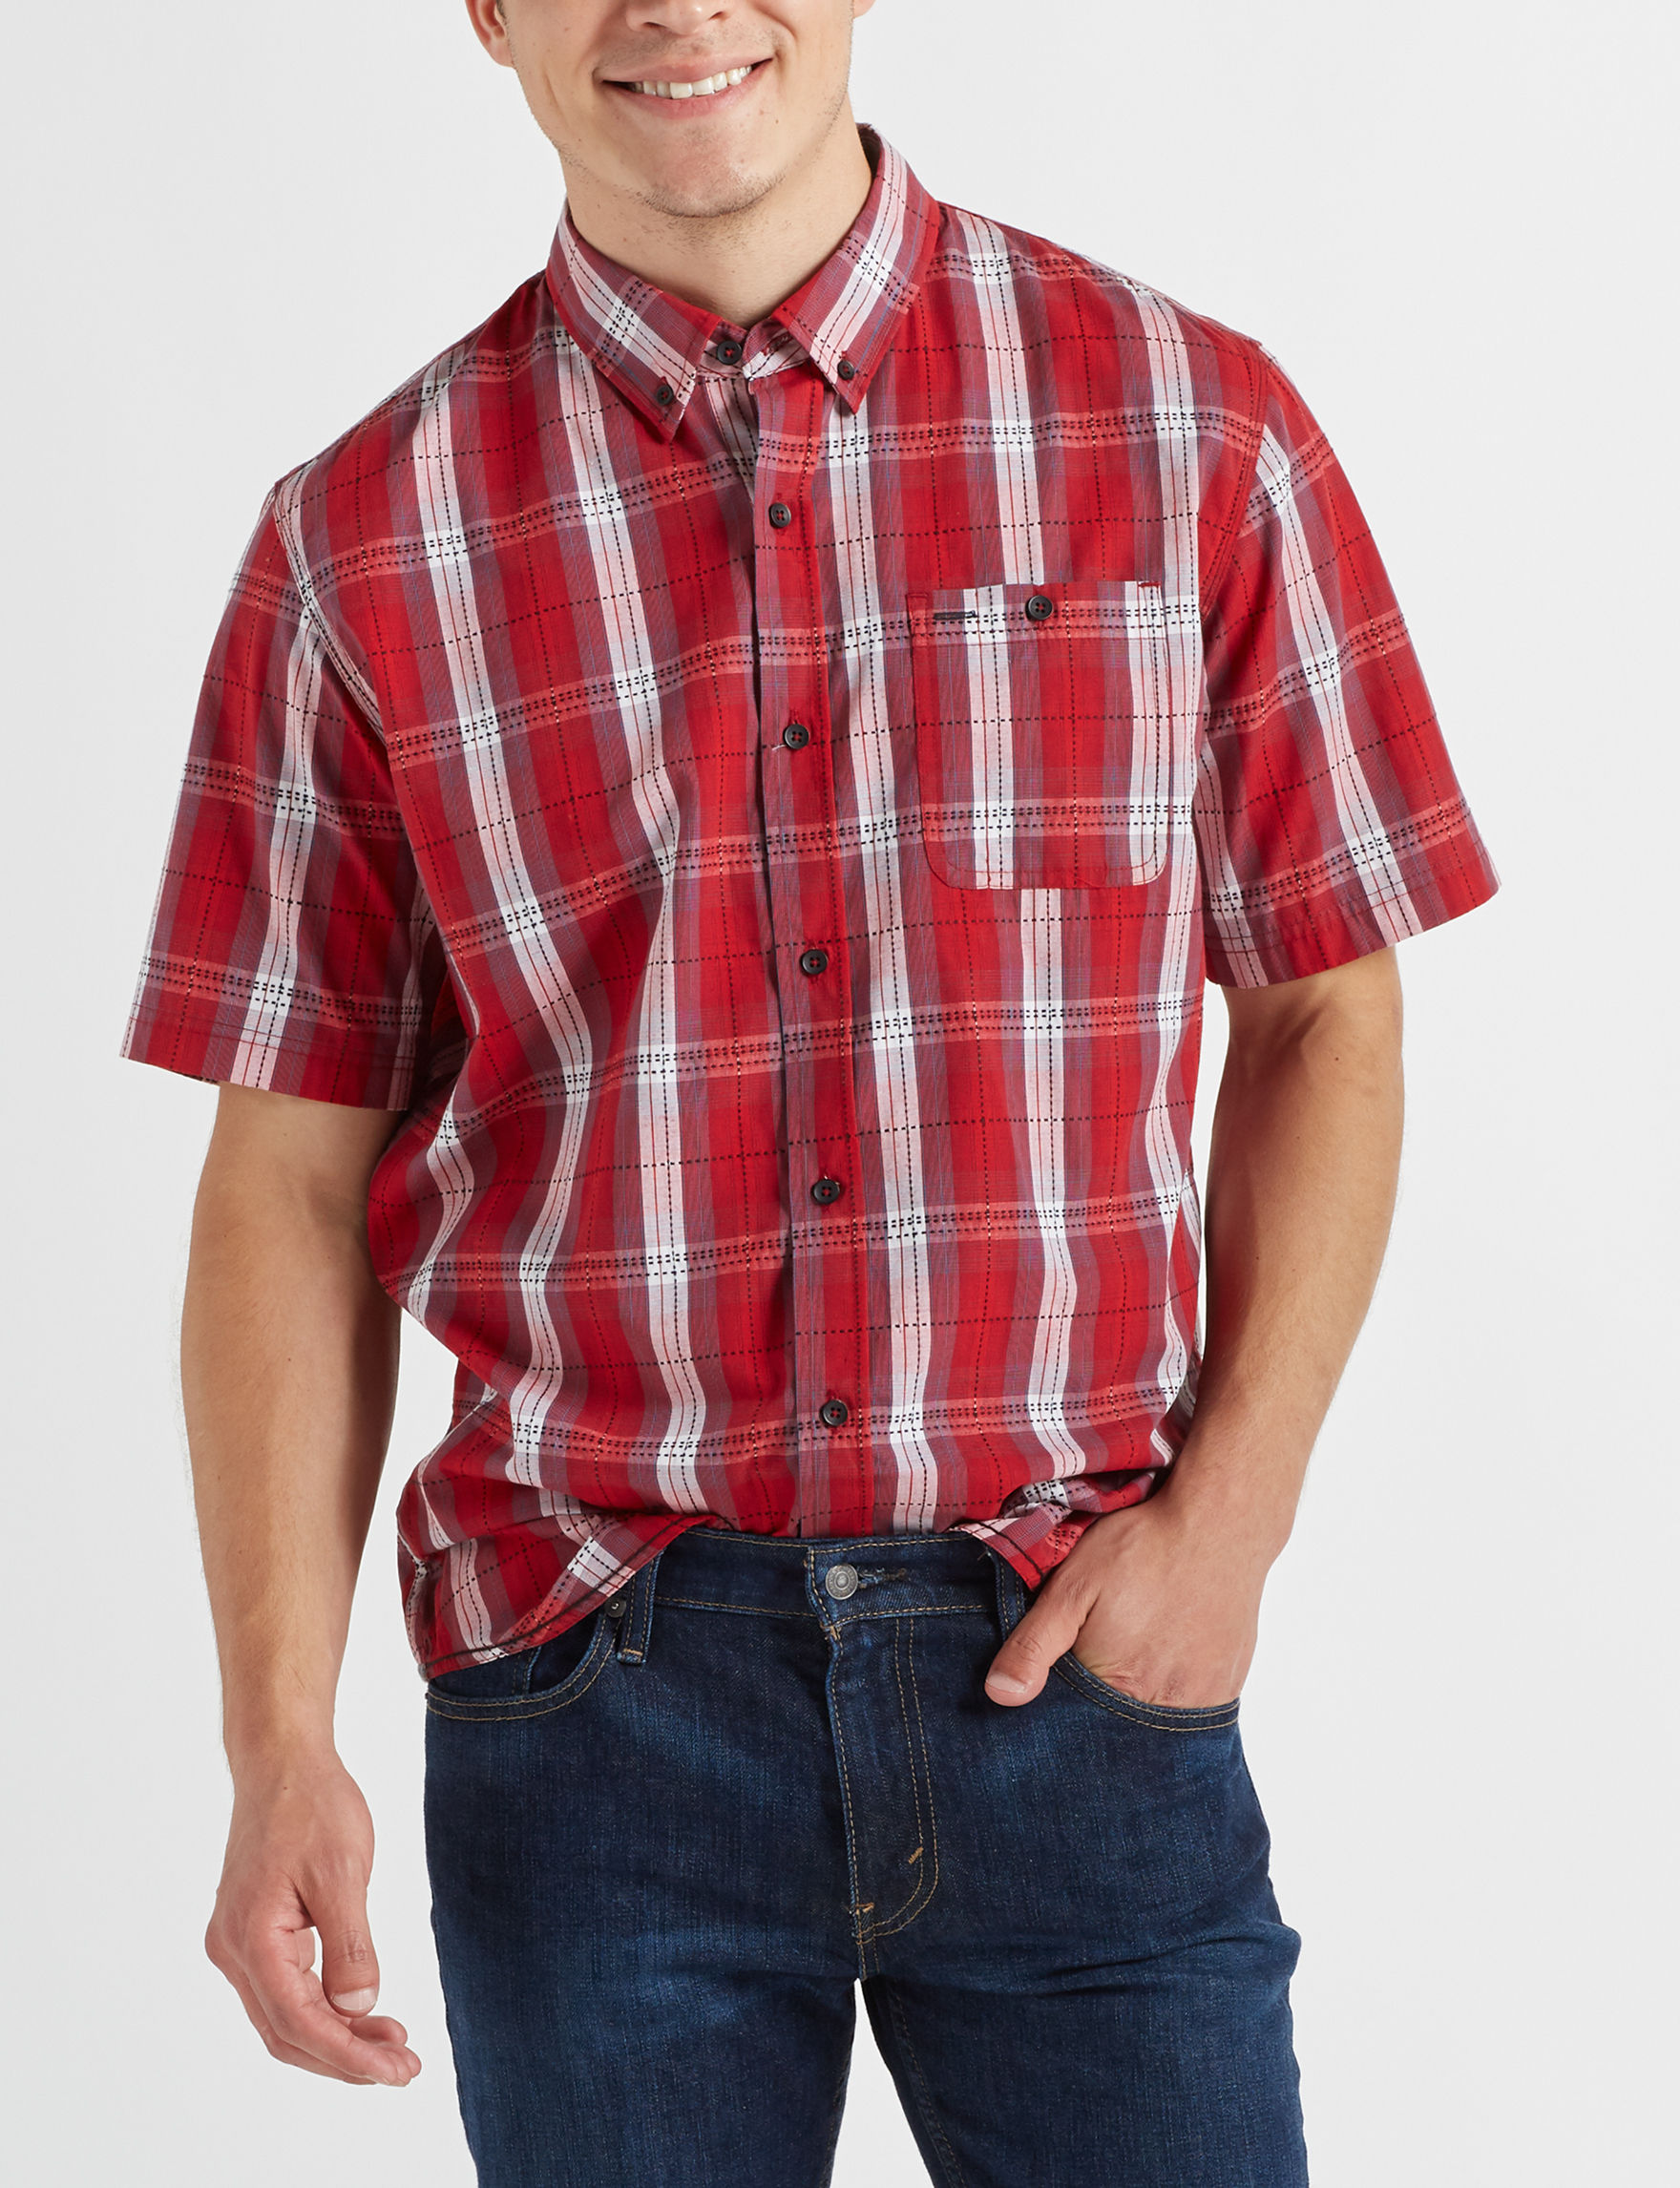 Scope Imports Red Plaid Casual Button Down Shirts